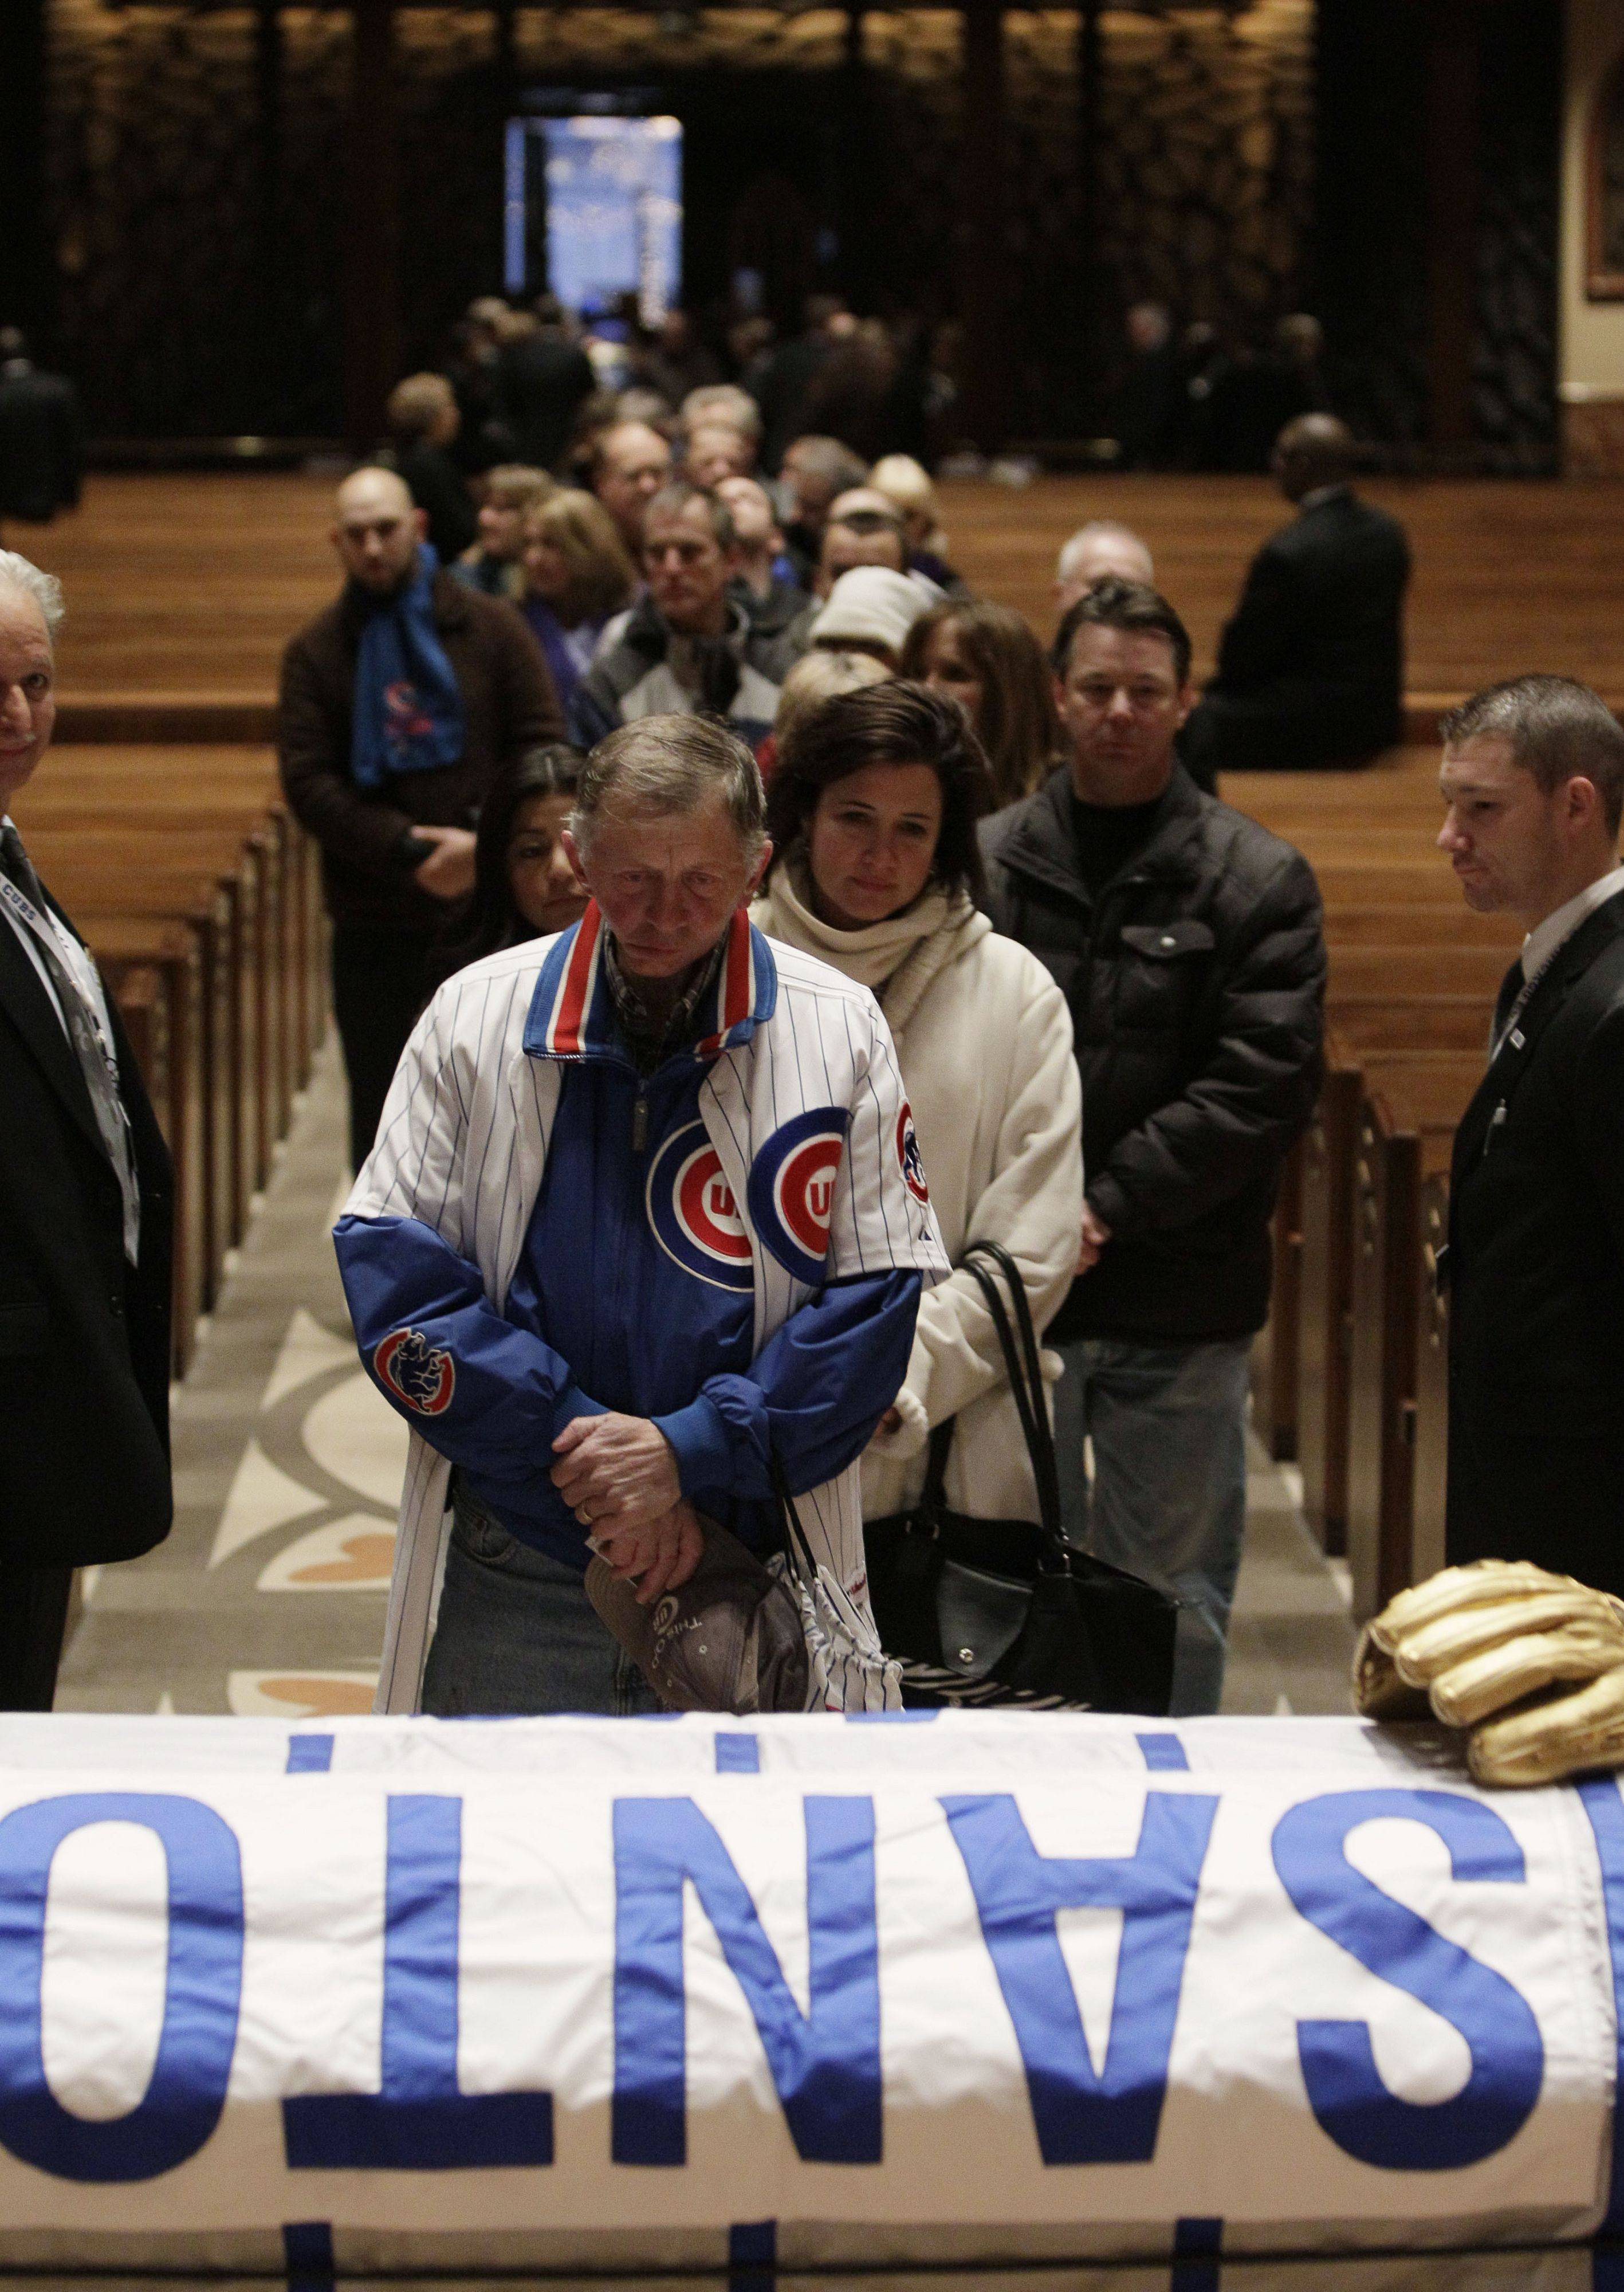 Cubs fans line up Thursday during the visitation service for Cubs great and longtime radio announcer Ron Santo at Holy Name Cathedral in Chicago. For more photos from the visitation, go to dailyherald.com